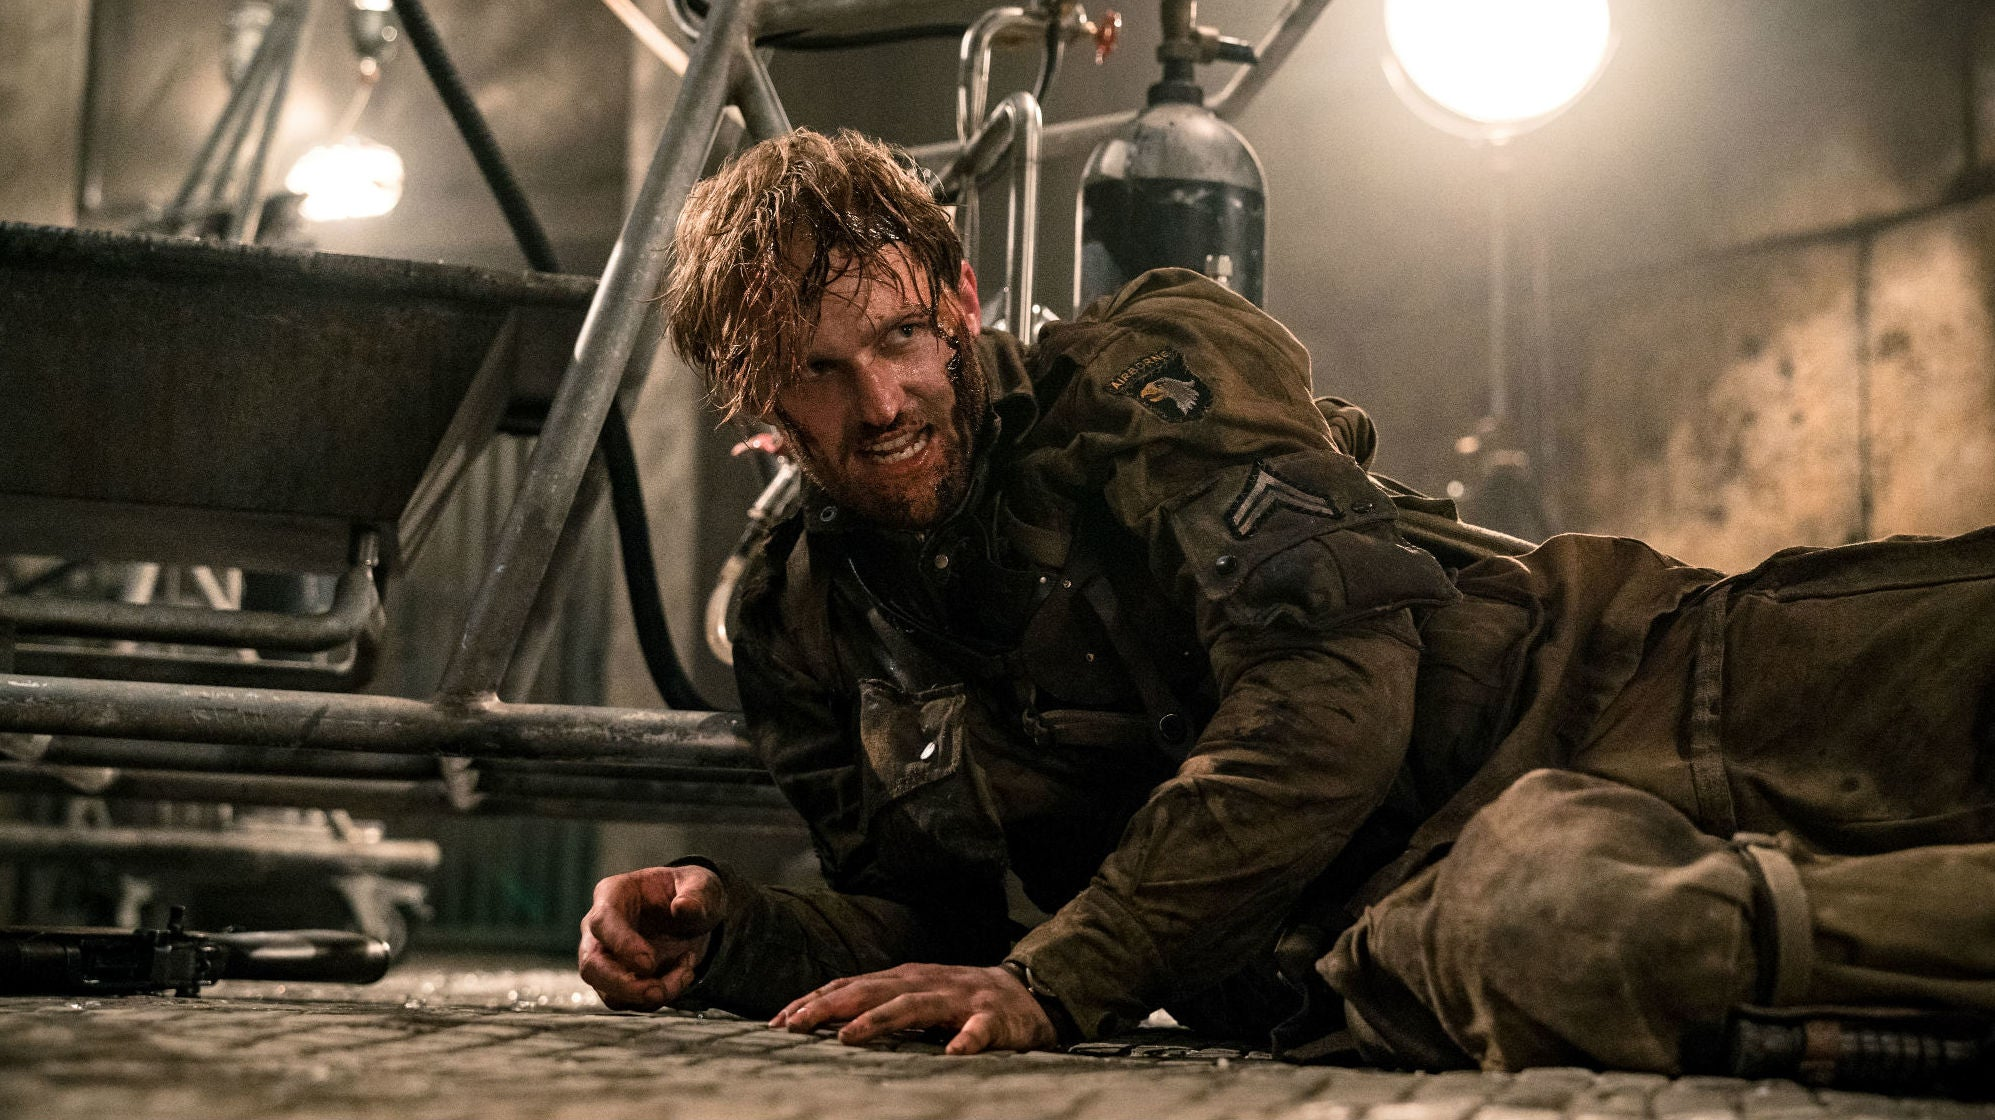 The Director Of Overlord Is OK With You Thinking He Made A Cloverfield Movie